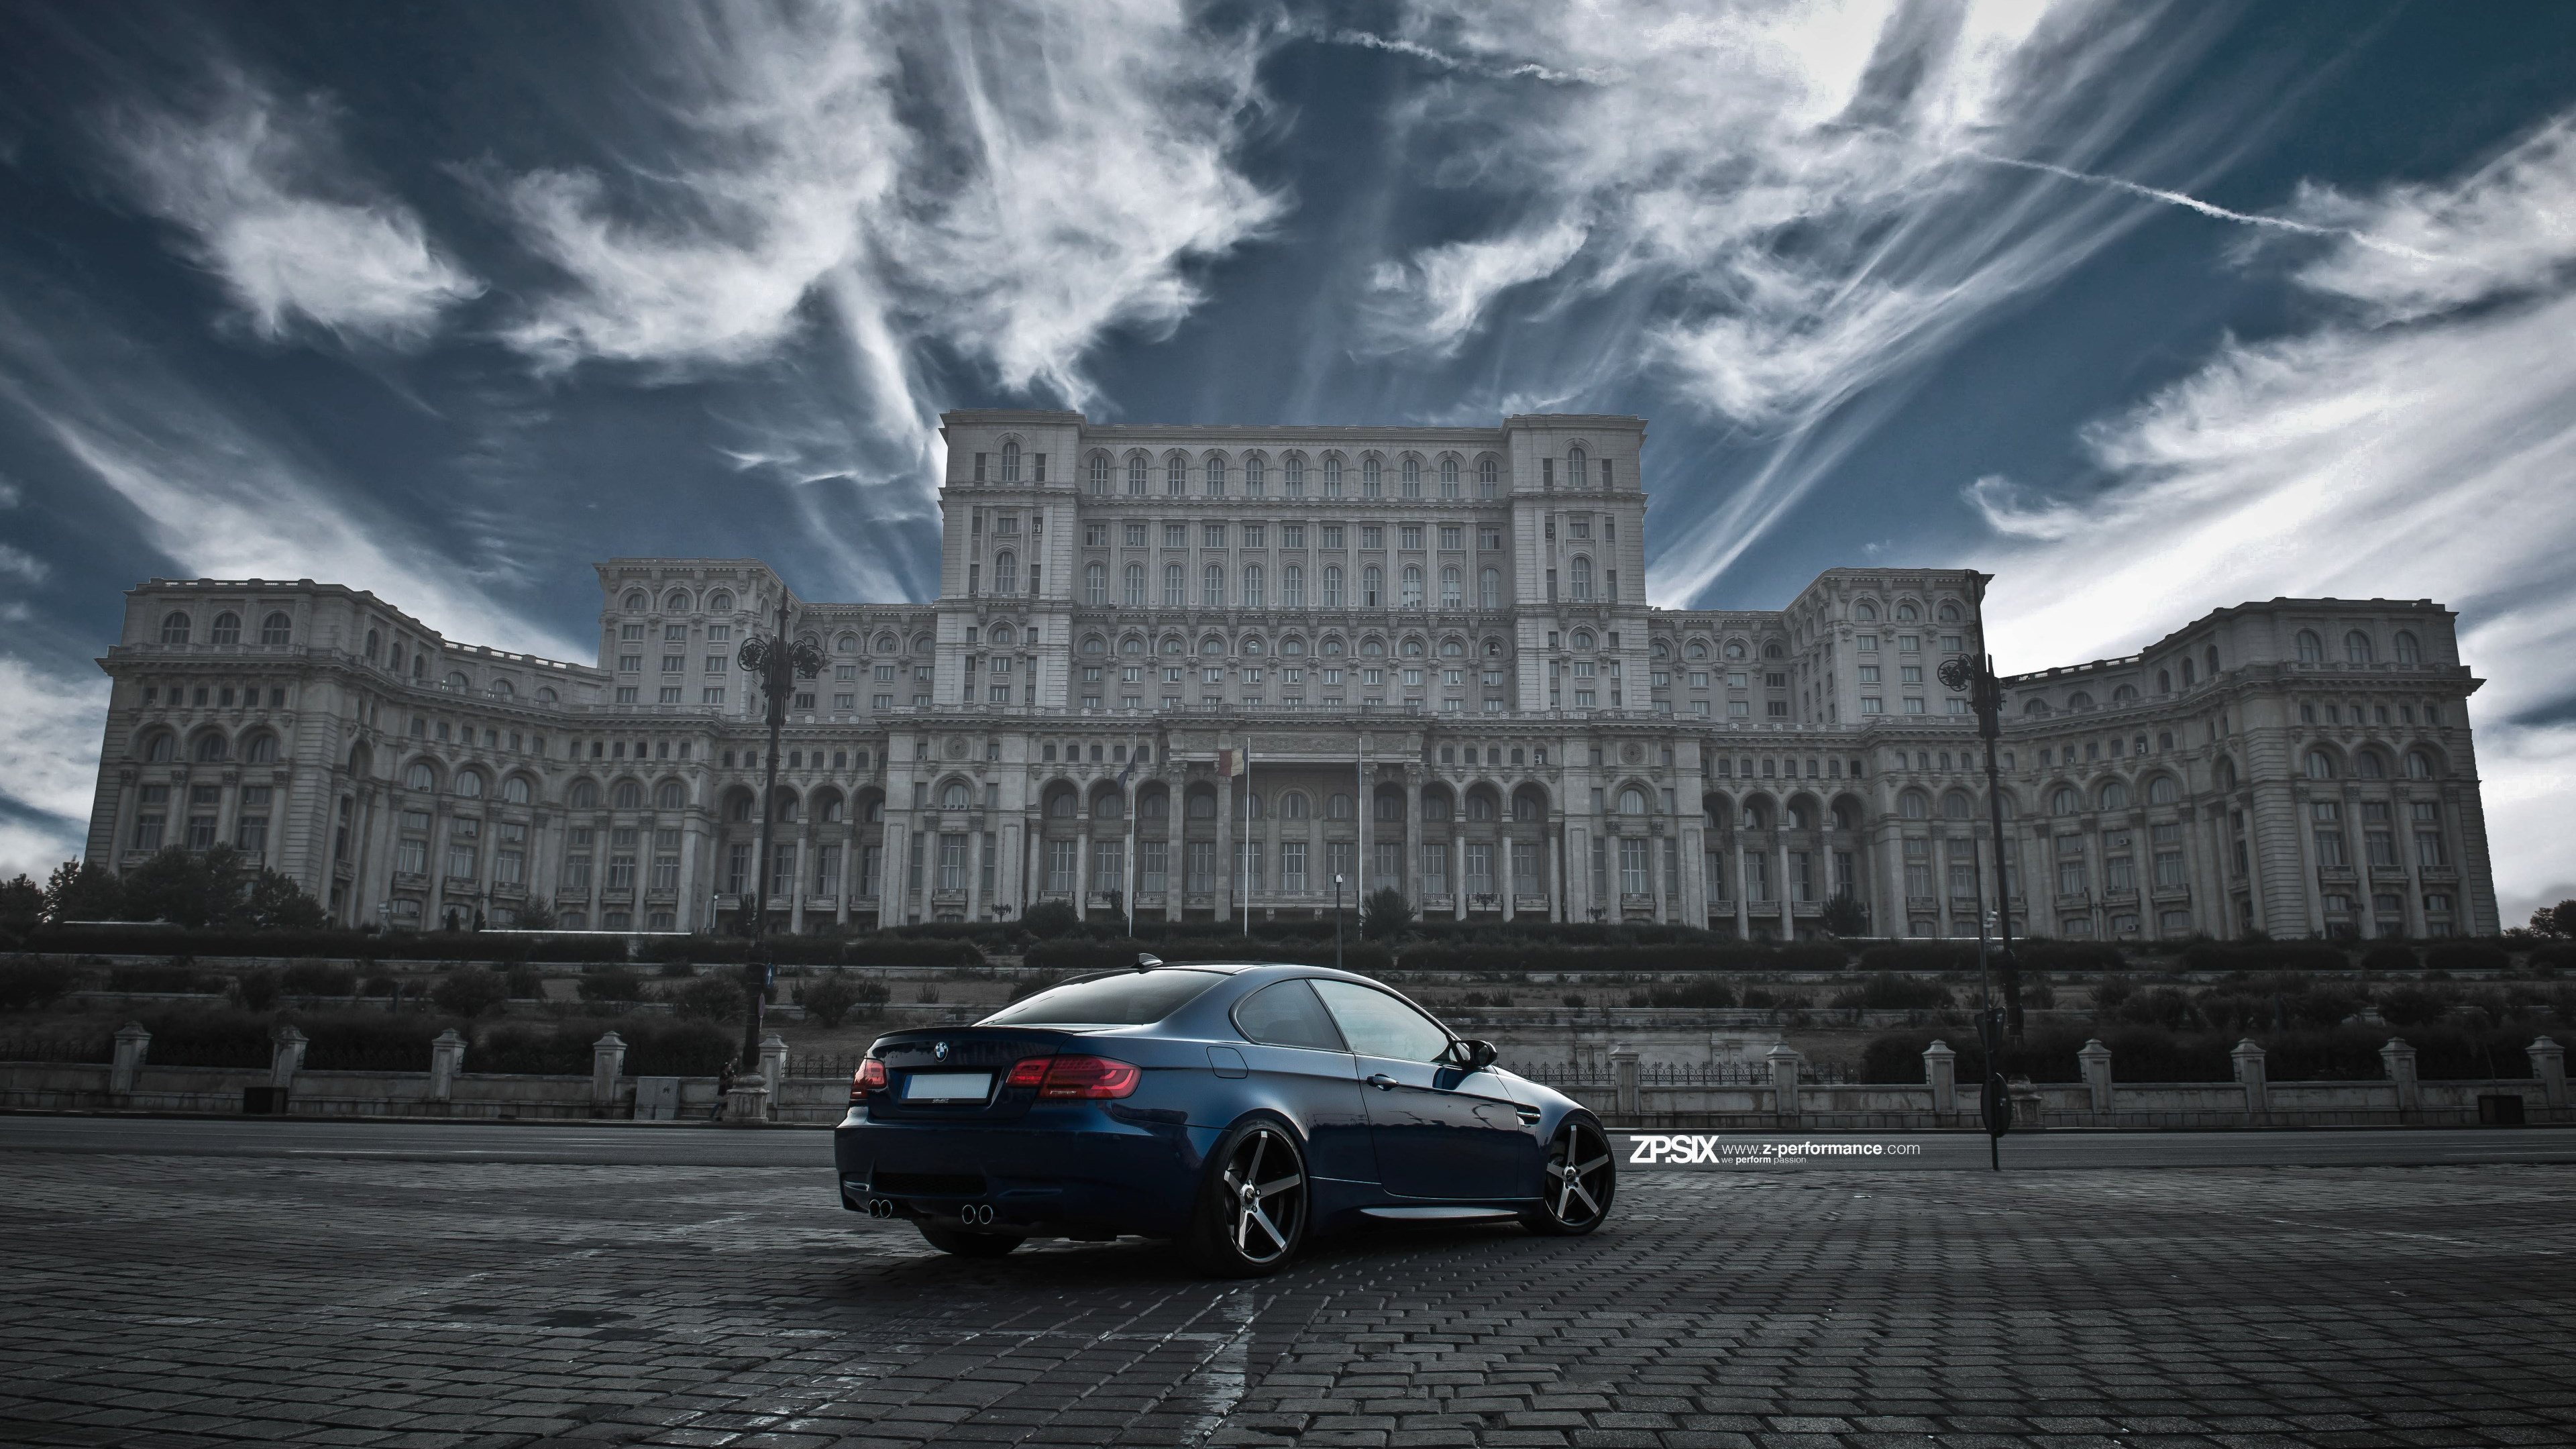 BMW E92 M3 in front of Palace of the Parliament wallpaper 3840x2160